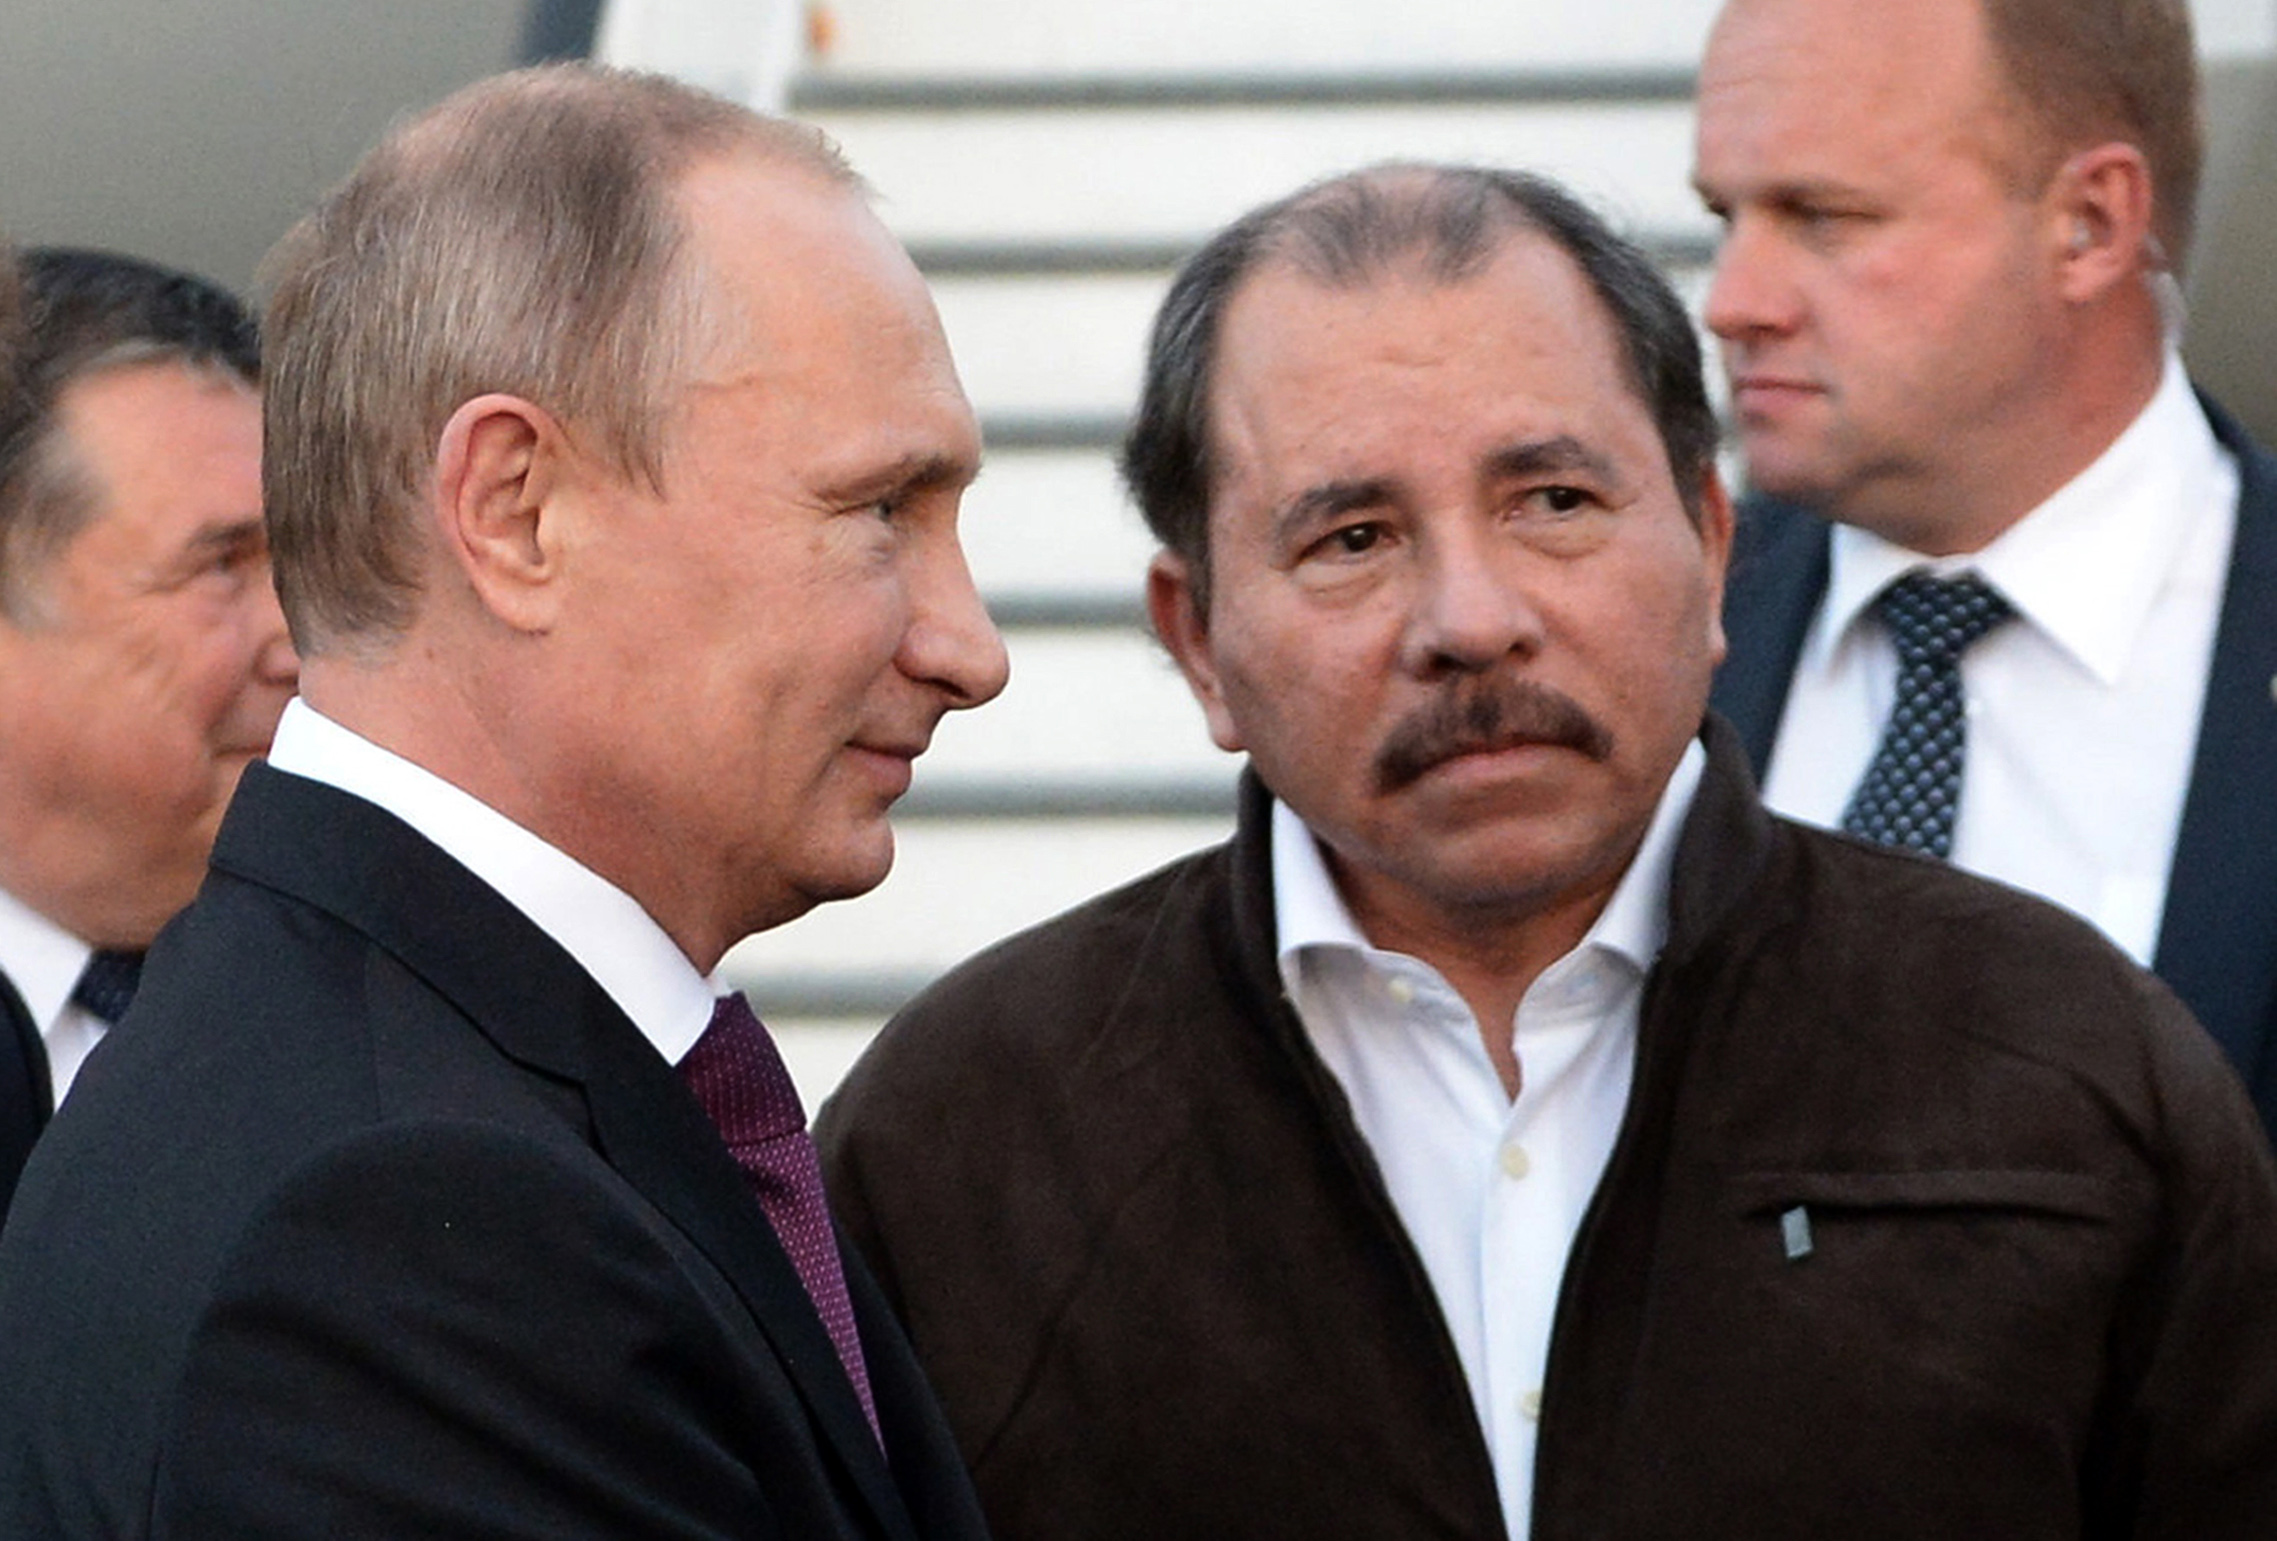 Nicaragua's President Daniel Ortega, right, and Russian President Vladimir Putin, left, attend a welcome ceremony at an airport in Managua, Nicaragua on July 12, 2014. RIA-Novosti Photo